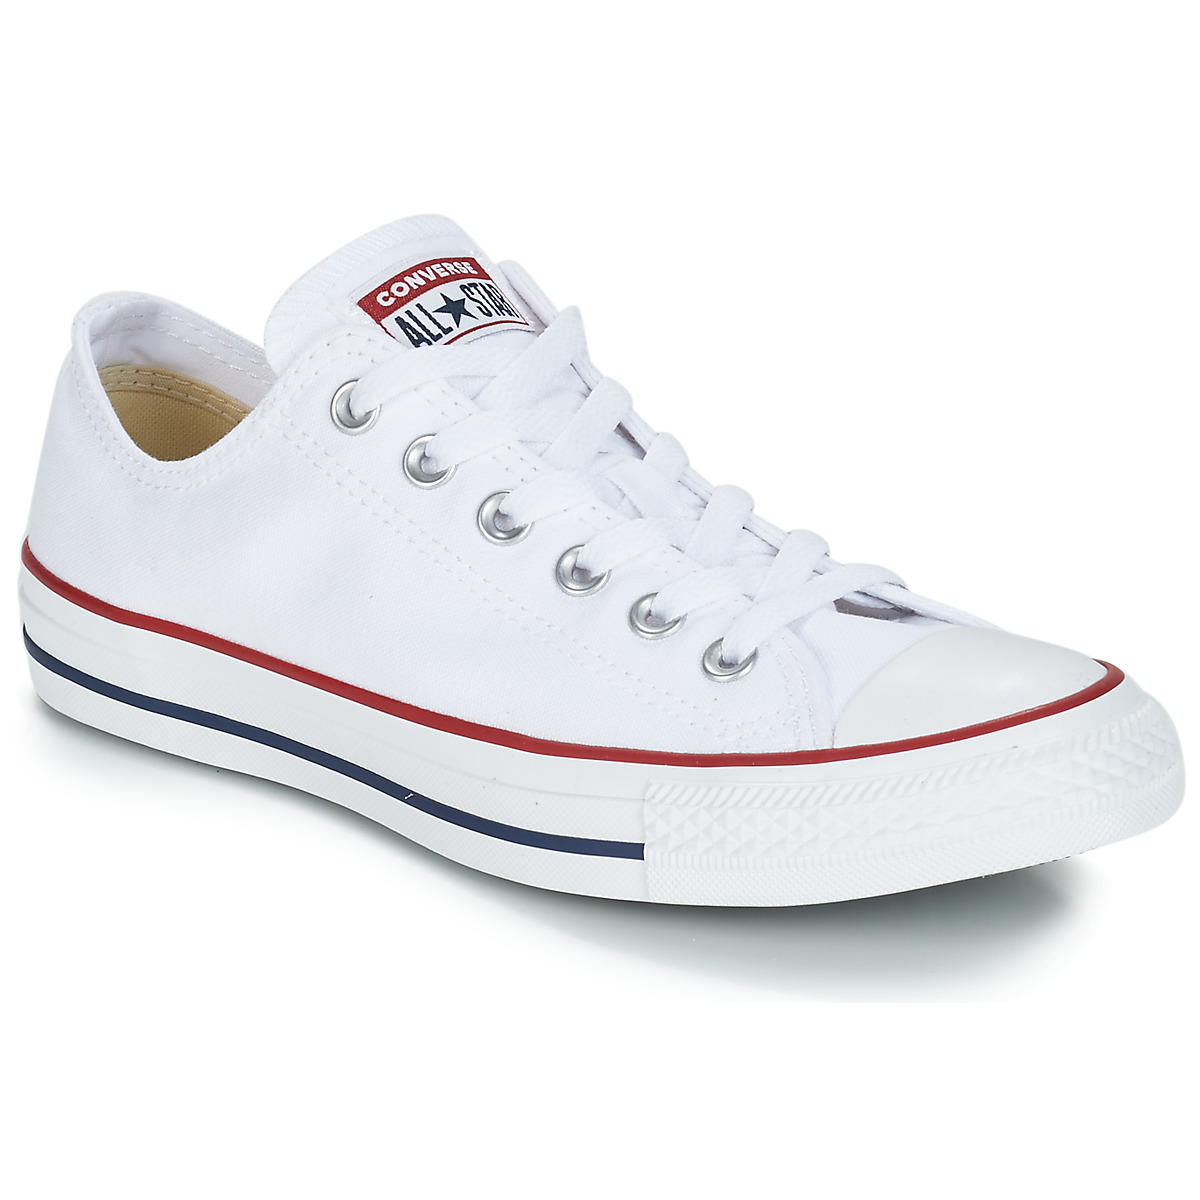 eb2a2fcee0e70 Chaussures Baskets basses Converse CHUCK TAYLOR ALL STAR CORE OX Blanc  Optical